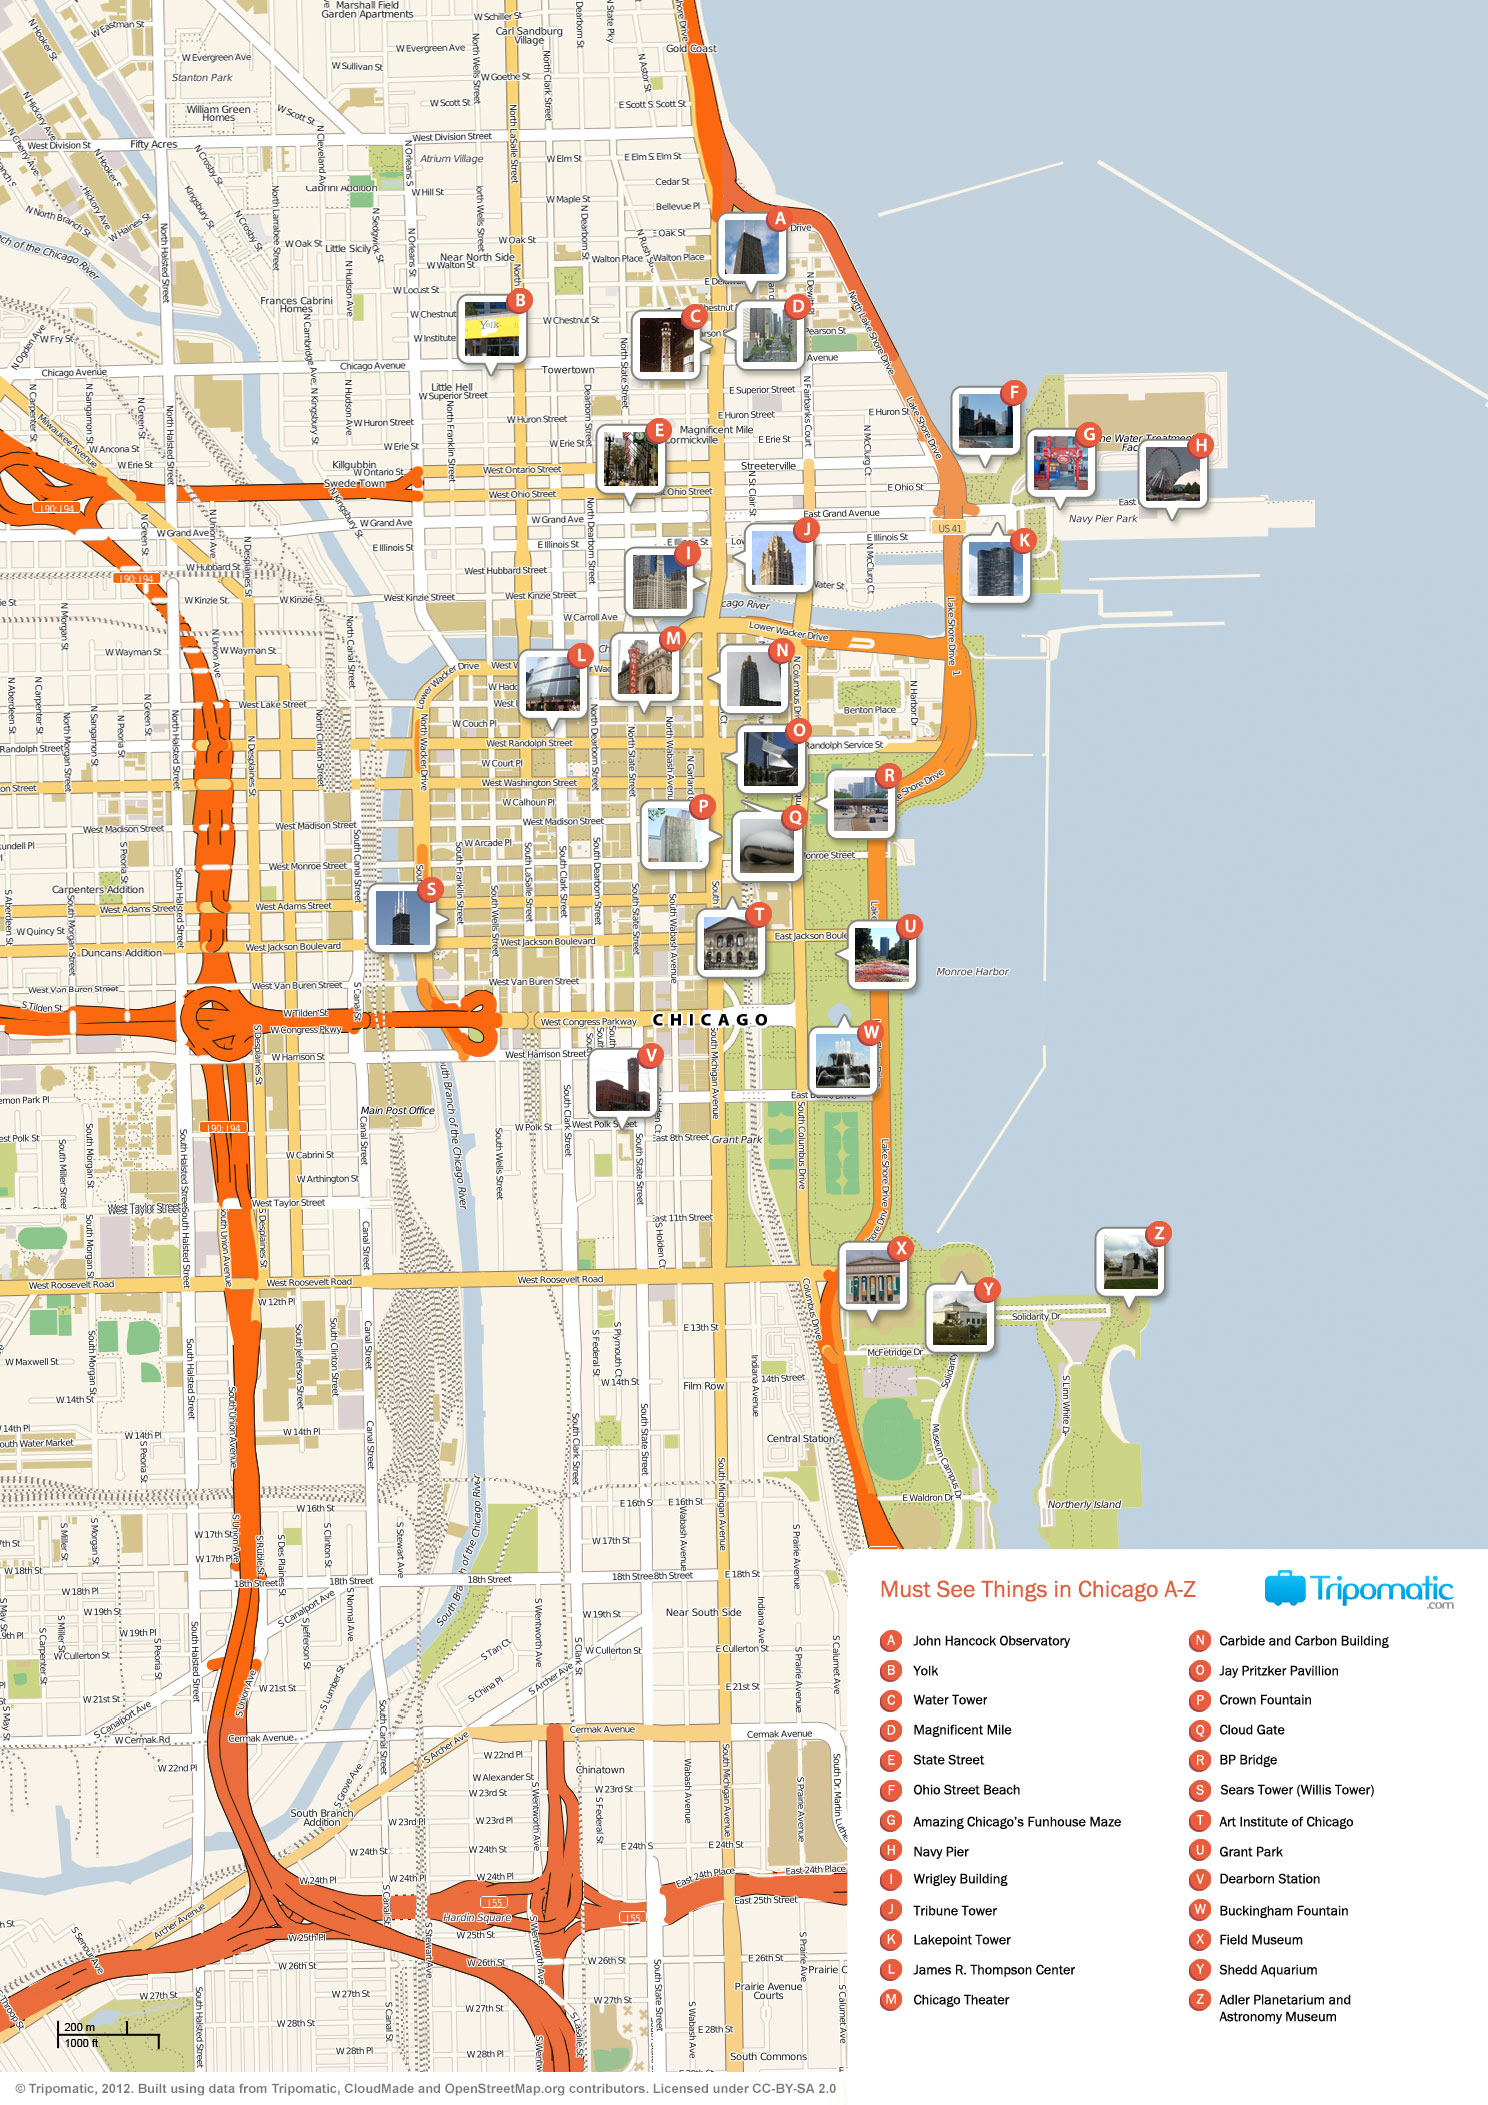 filechicago printable tourist attractions map  wikimedia commons - filechicago printable tourist attractions map